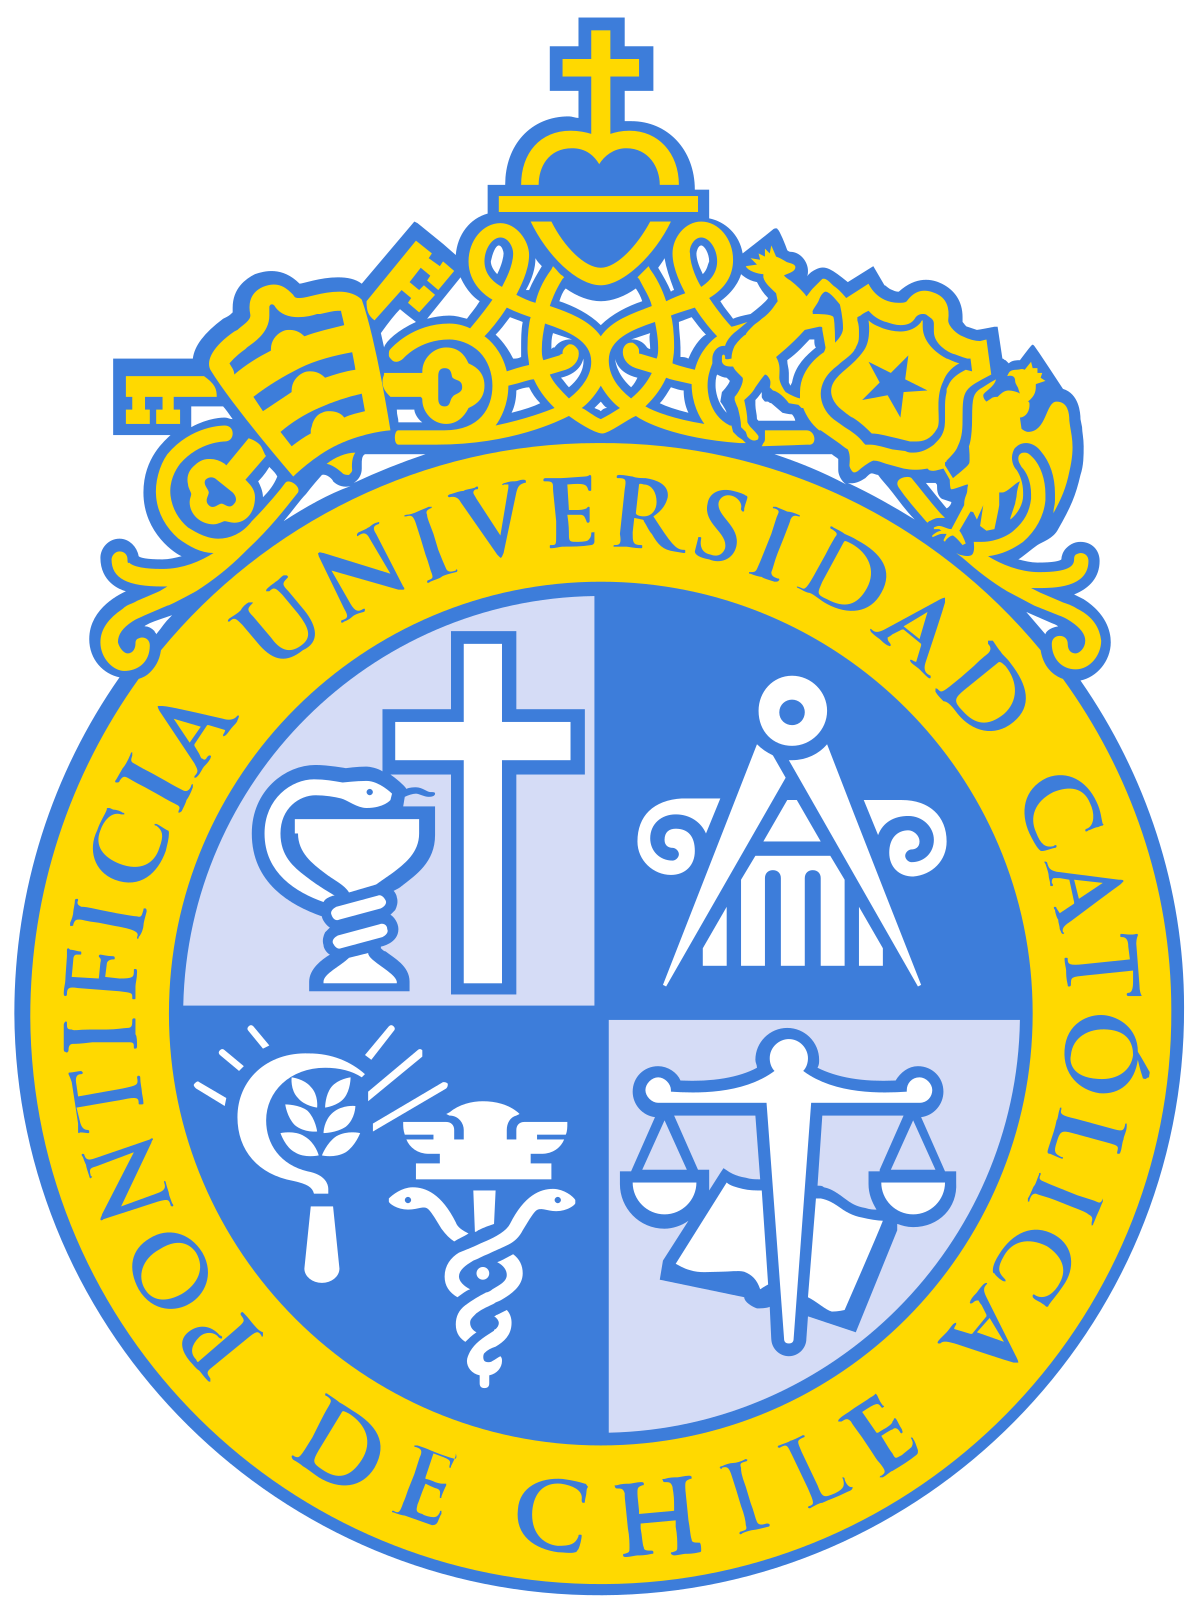 pontificia universidad catolica de chile